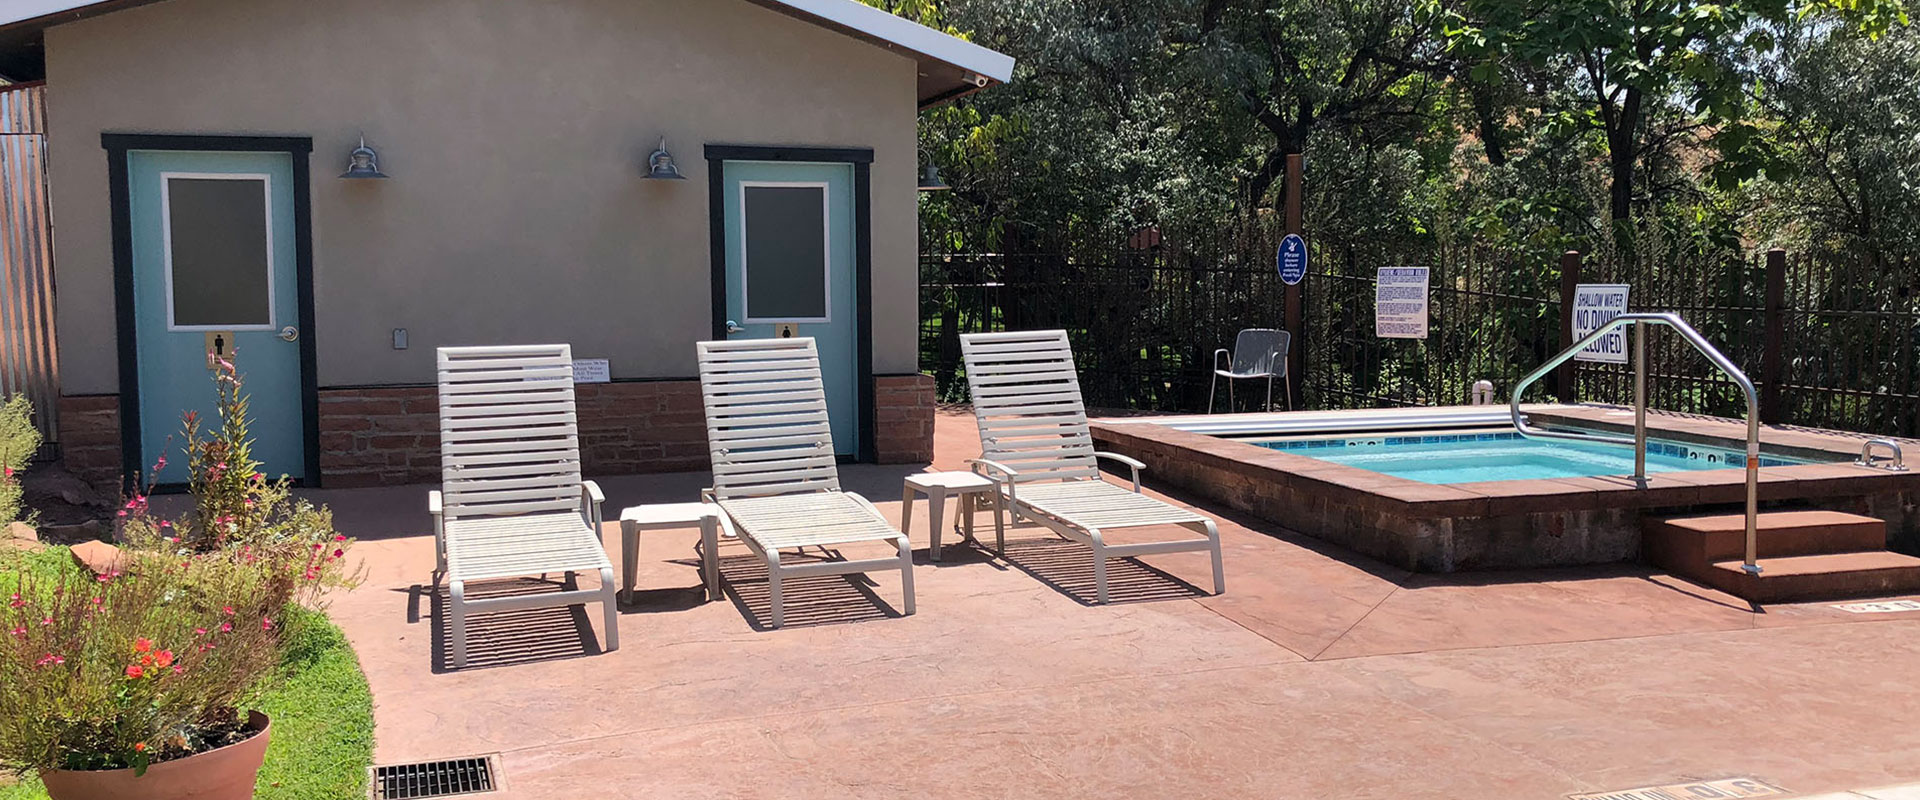 Four sets of black wrought iron tables and chairs are placed over red and white stone pavement at an outdoor seating area for guests of Moab Springs Ranch.